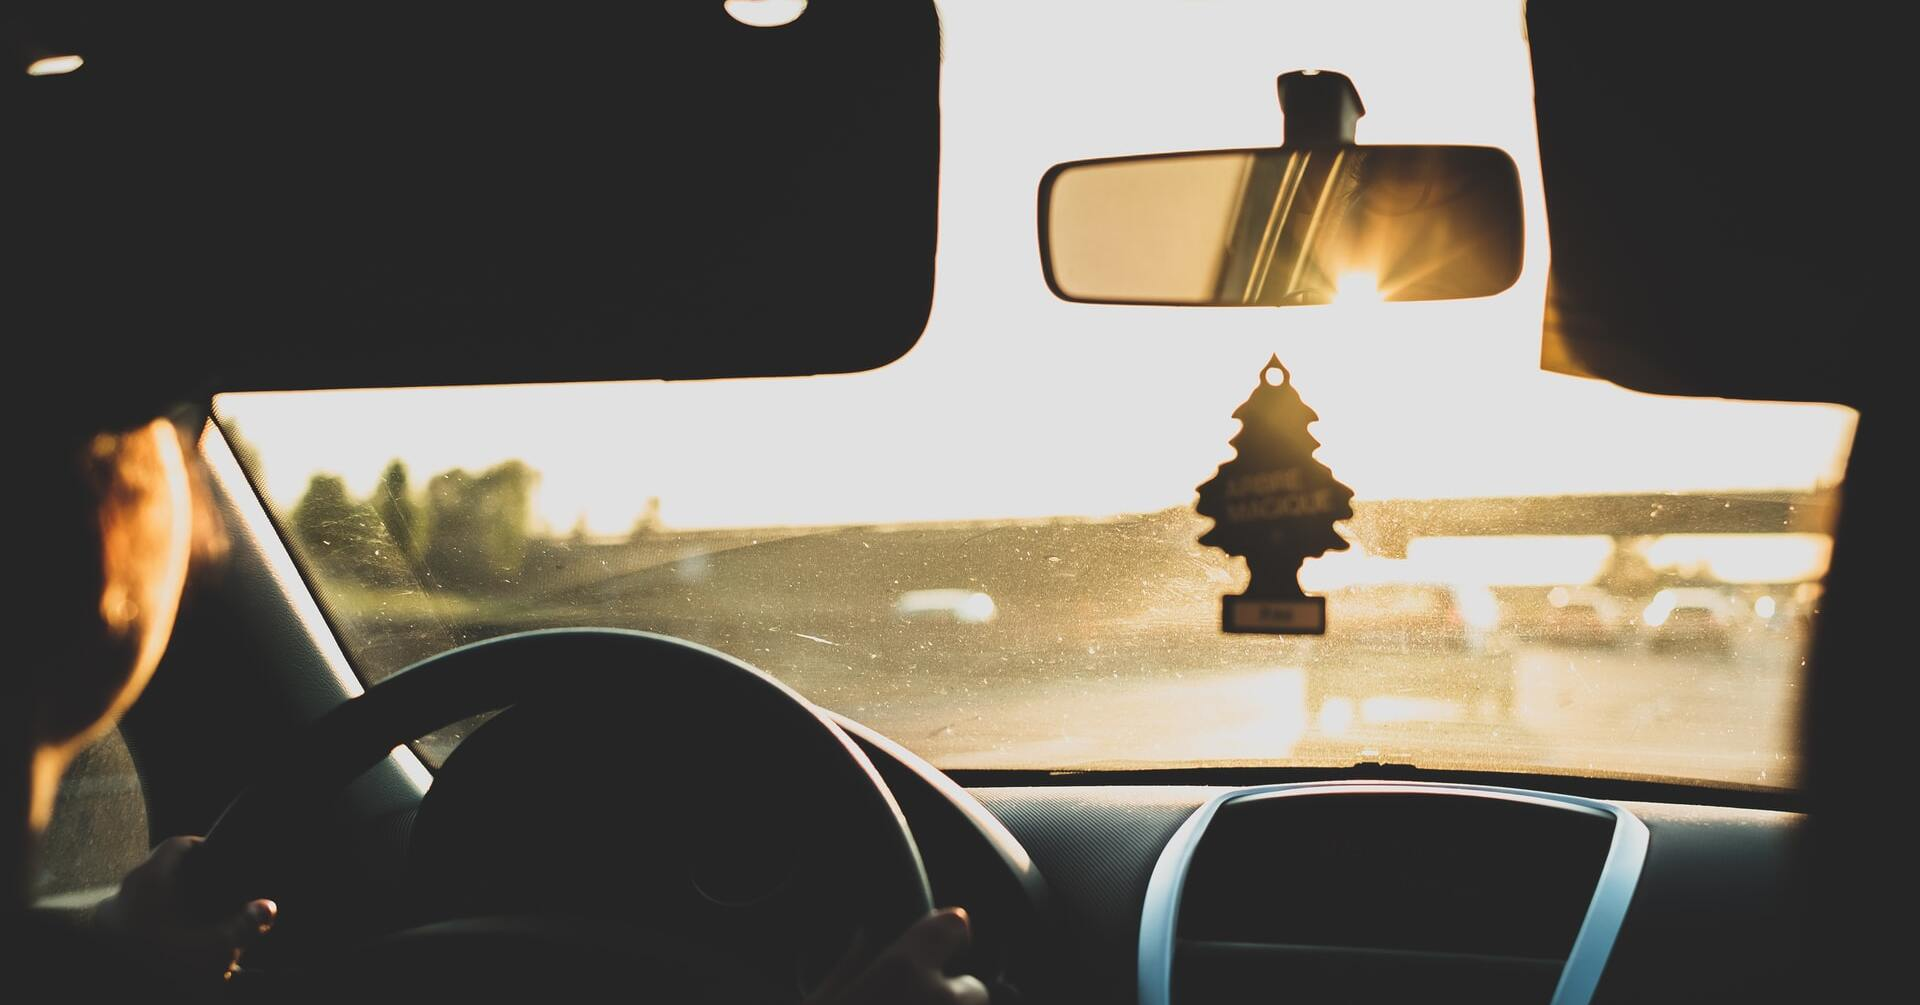 An air freshener hangs from a car's rearview mirror